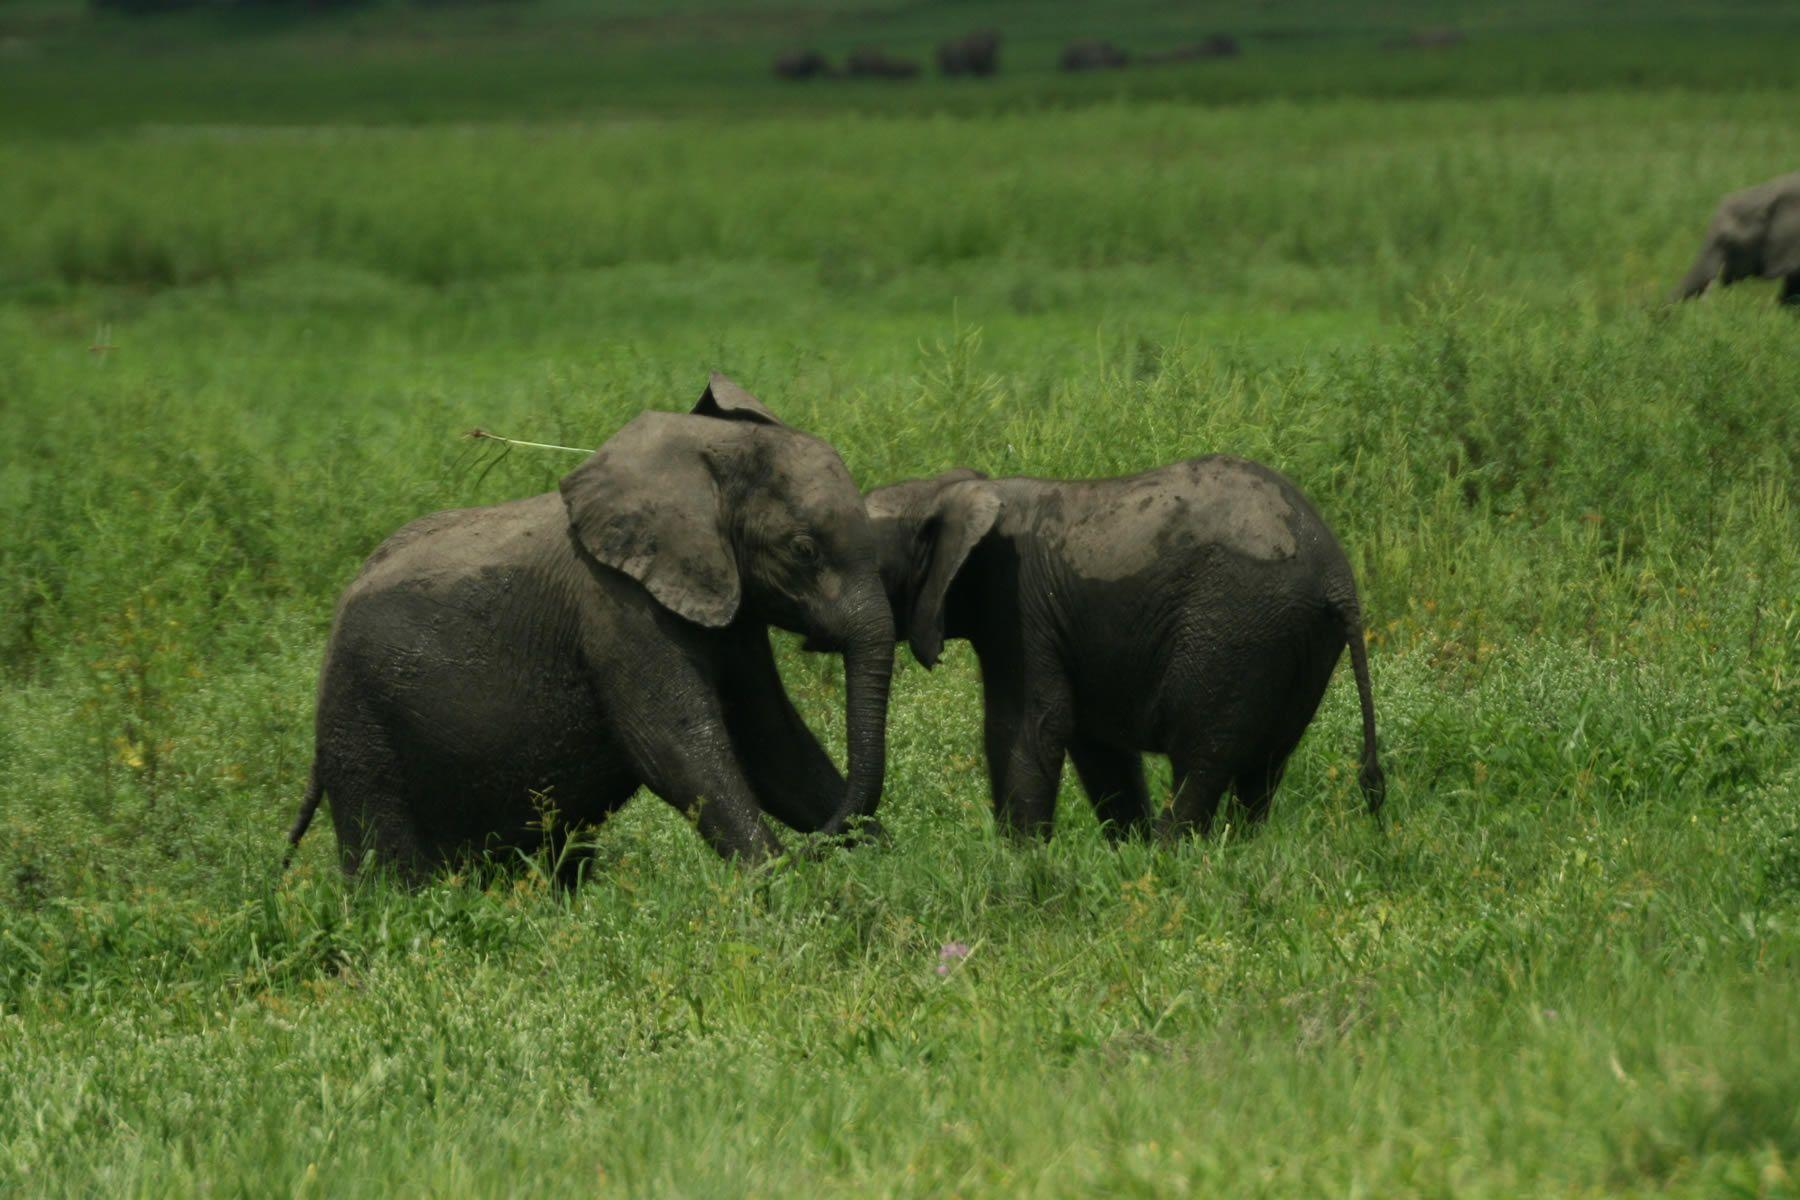 Baby Elephant Wallpapers – Cool Digital Photography